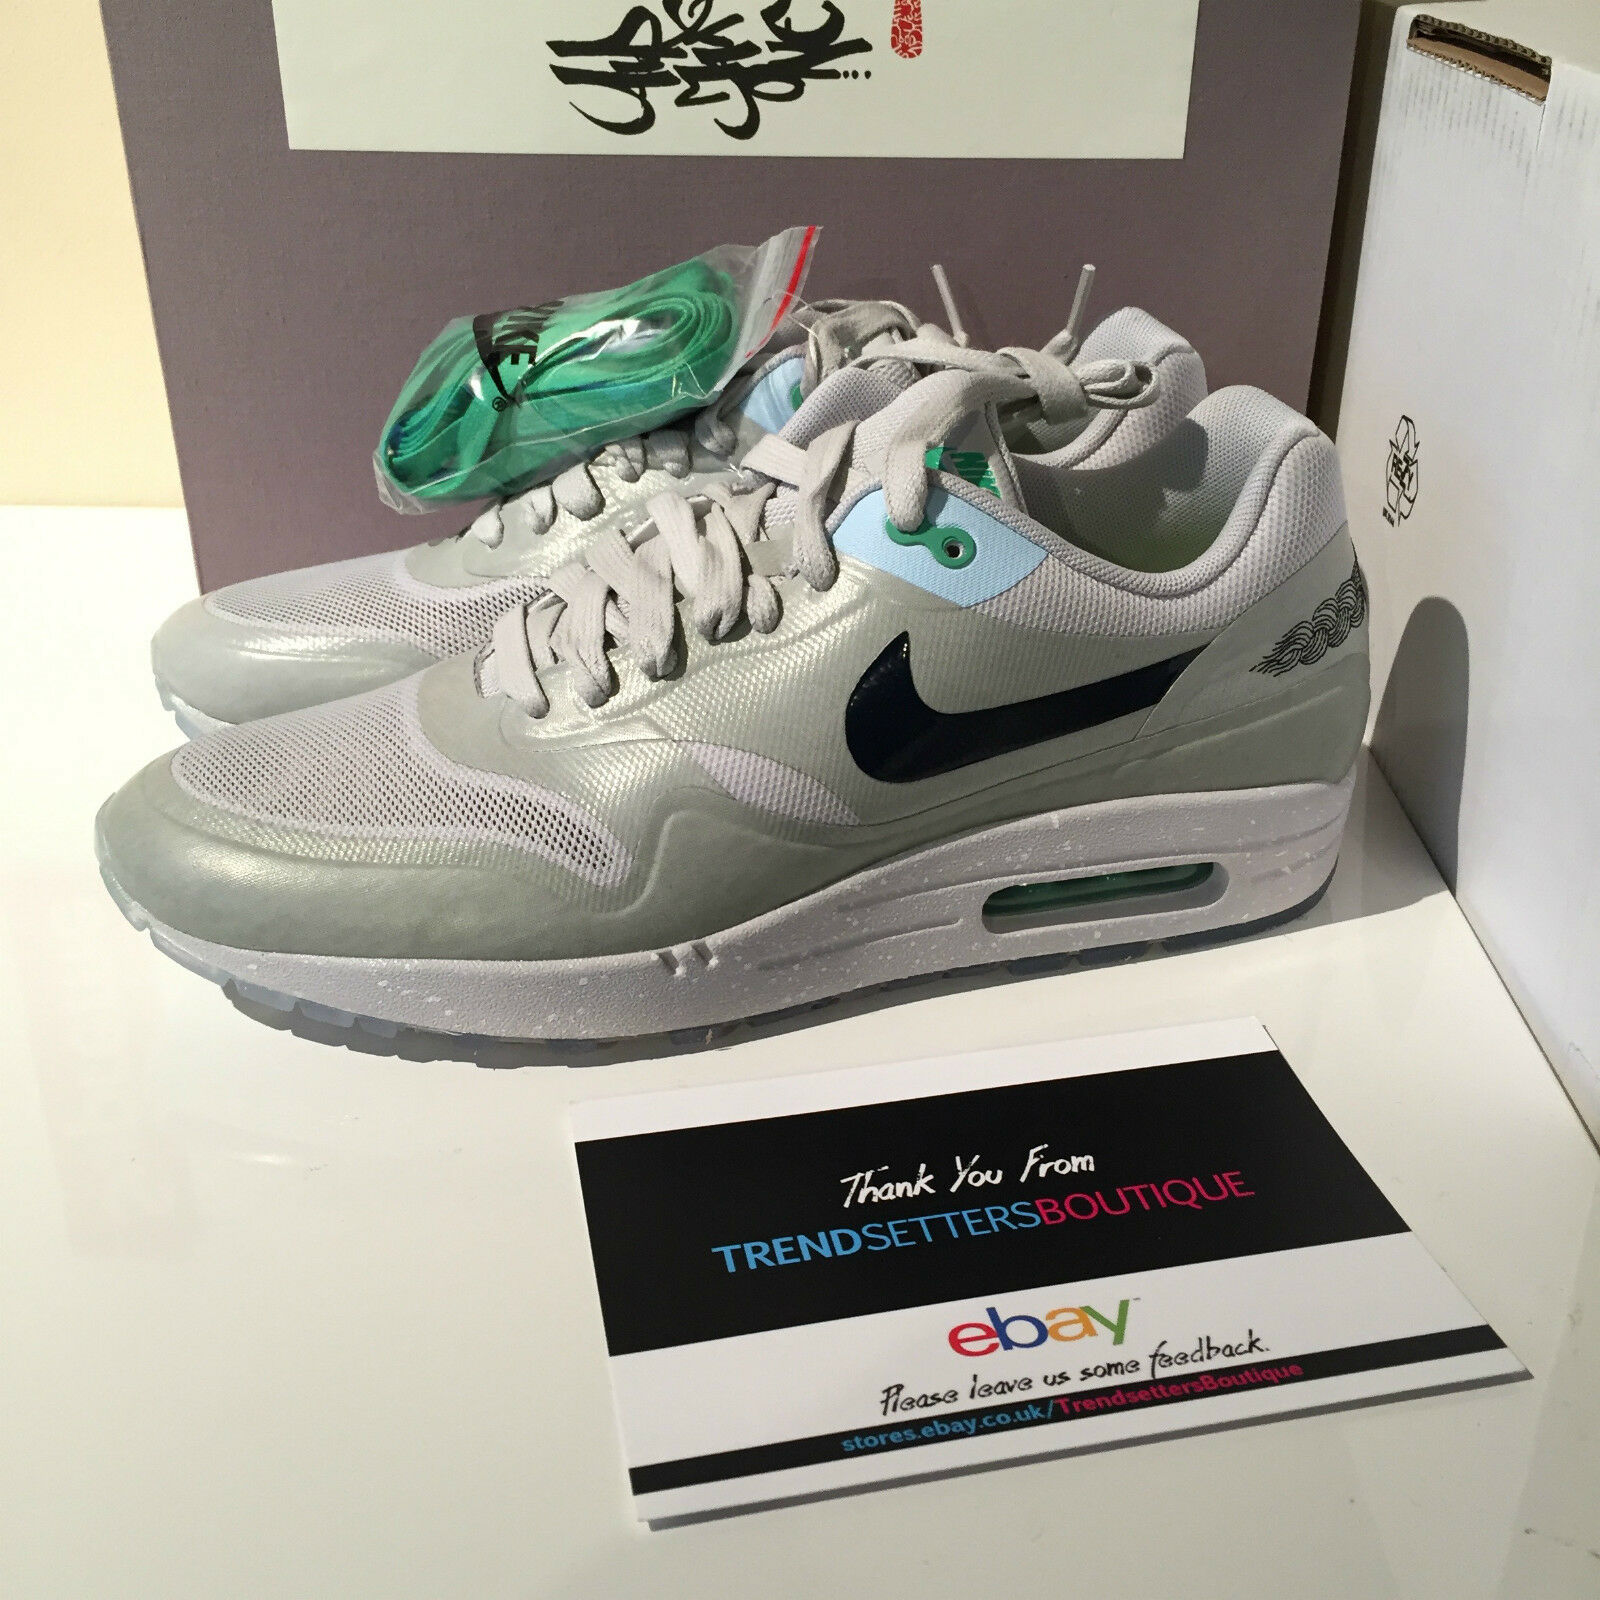 NIKE X CLOT AIR MAX 1 SP KISS OF DEATH II US 9.5 hyperfuse Atmos 2013